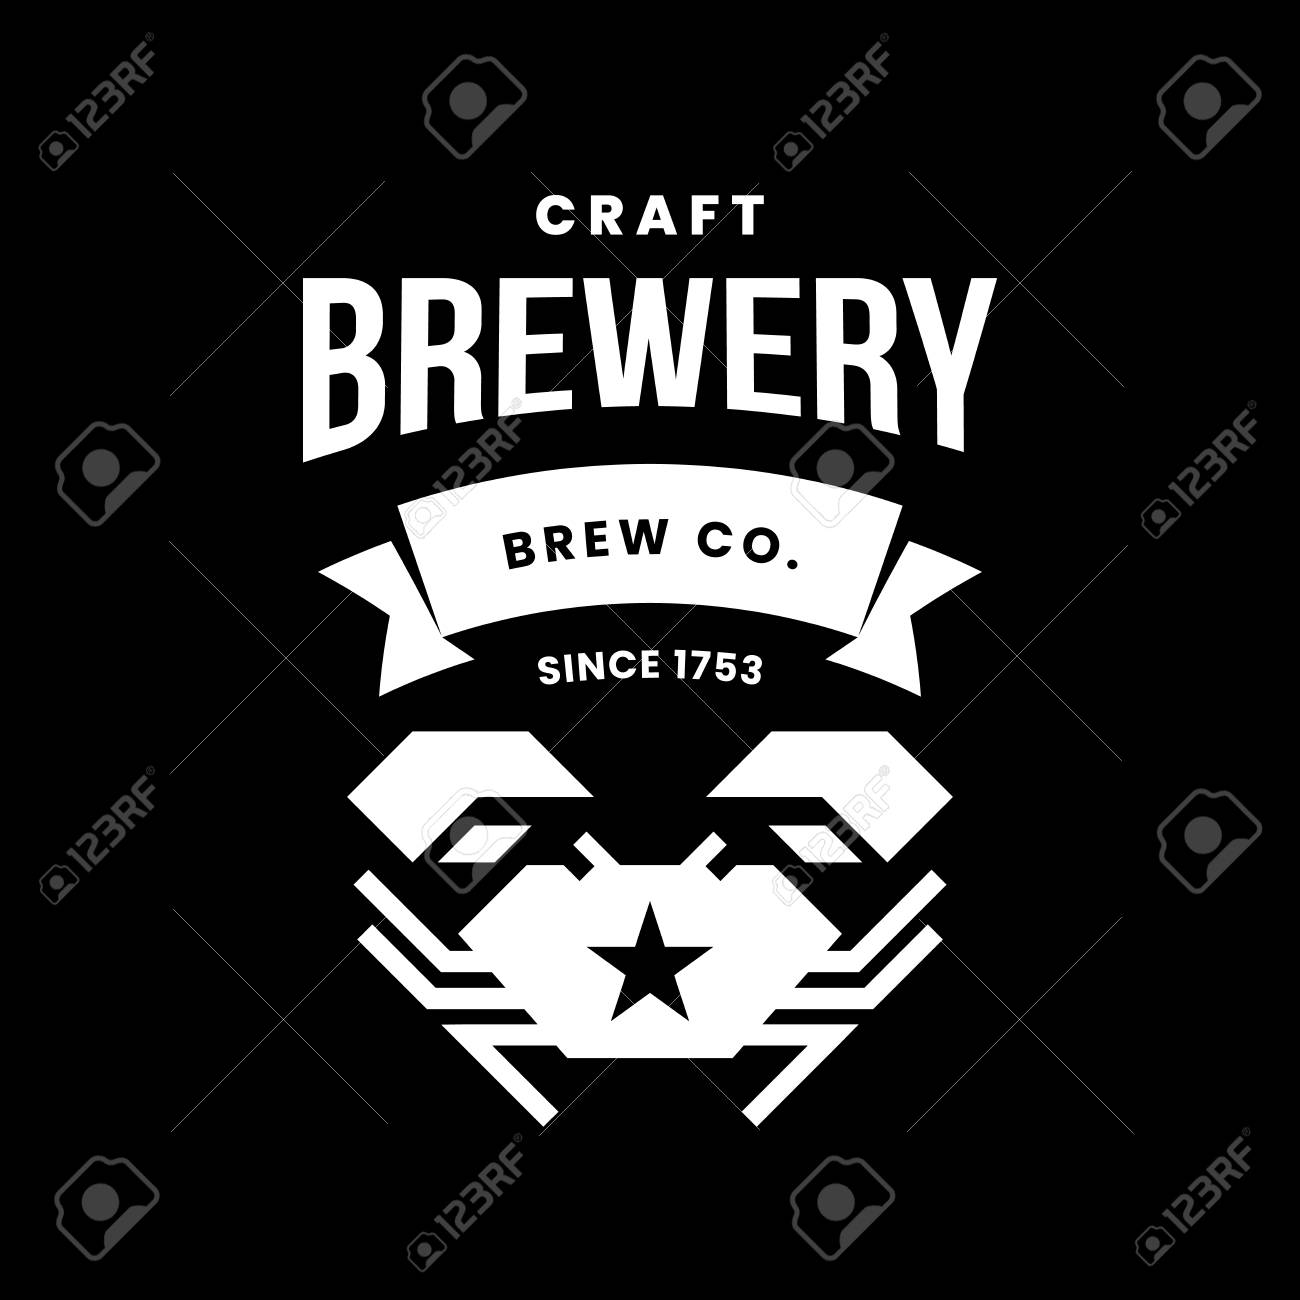 Modern craft beer drink vector logo sign for bar, pub, store, brewhouse or brewery isolated on black background. Premium quality crab logotype illustration. Brewing fest fashion t-shirt badge design. - 120438738